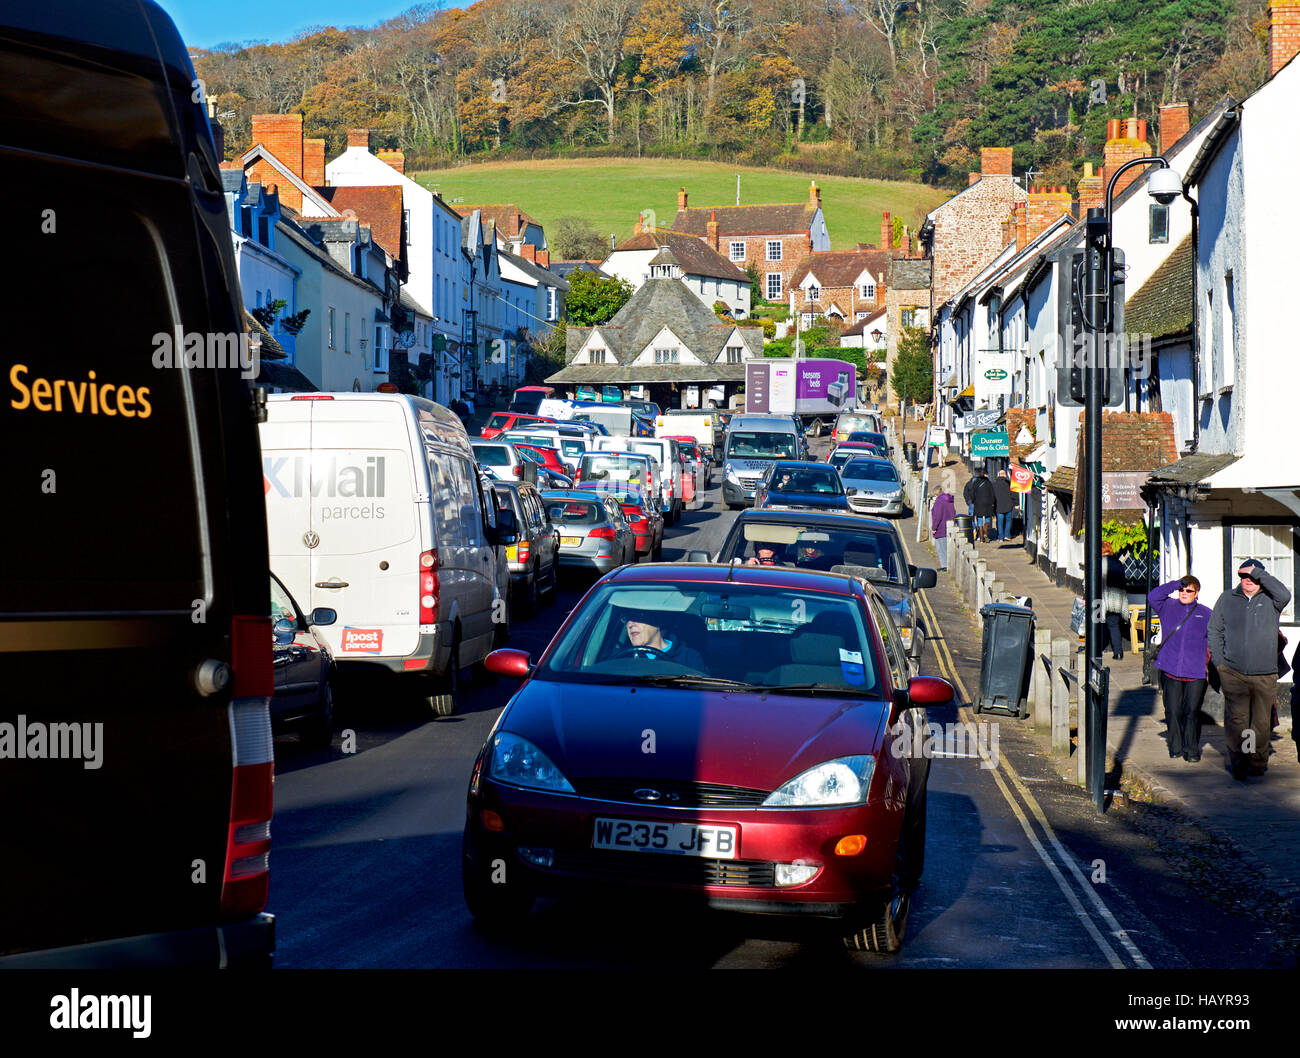 Traffic gridlock in the village of Dunster, Somerset, England UK - Stock Image